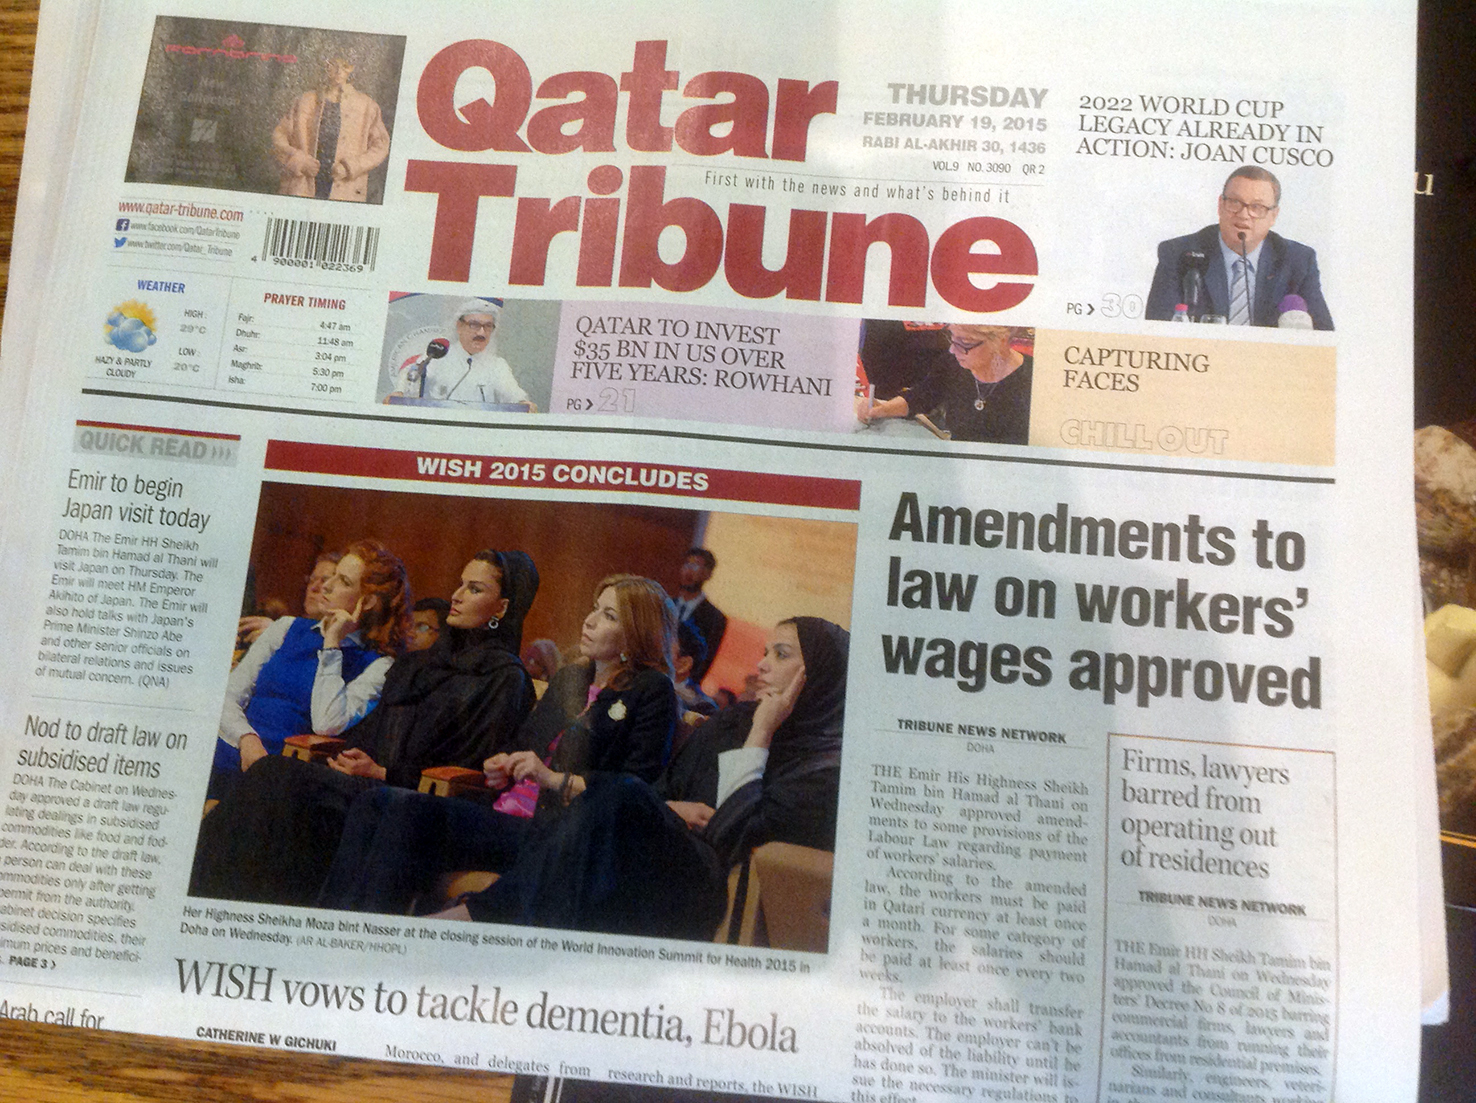 Qatar Tribune cover